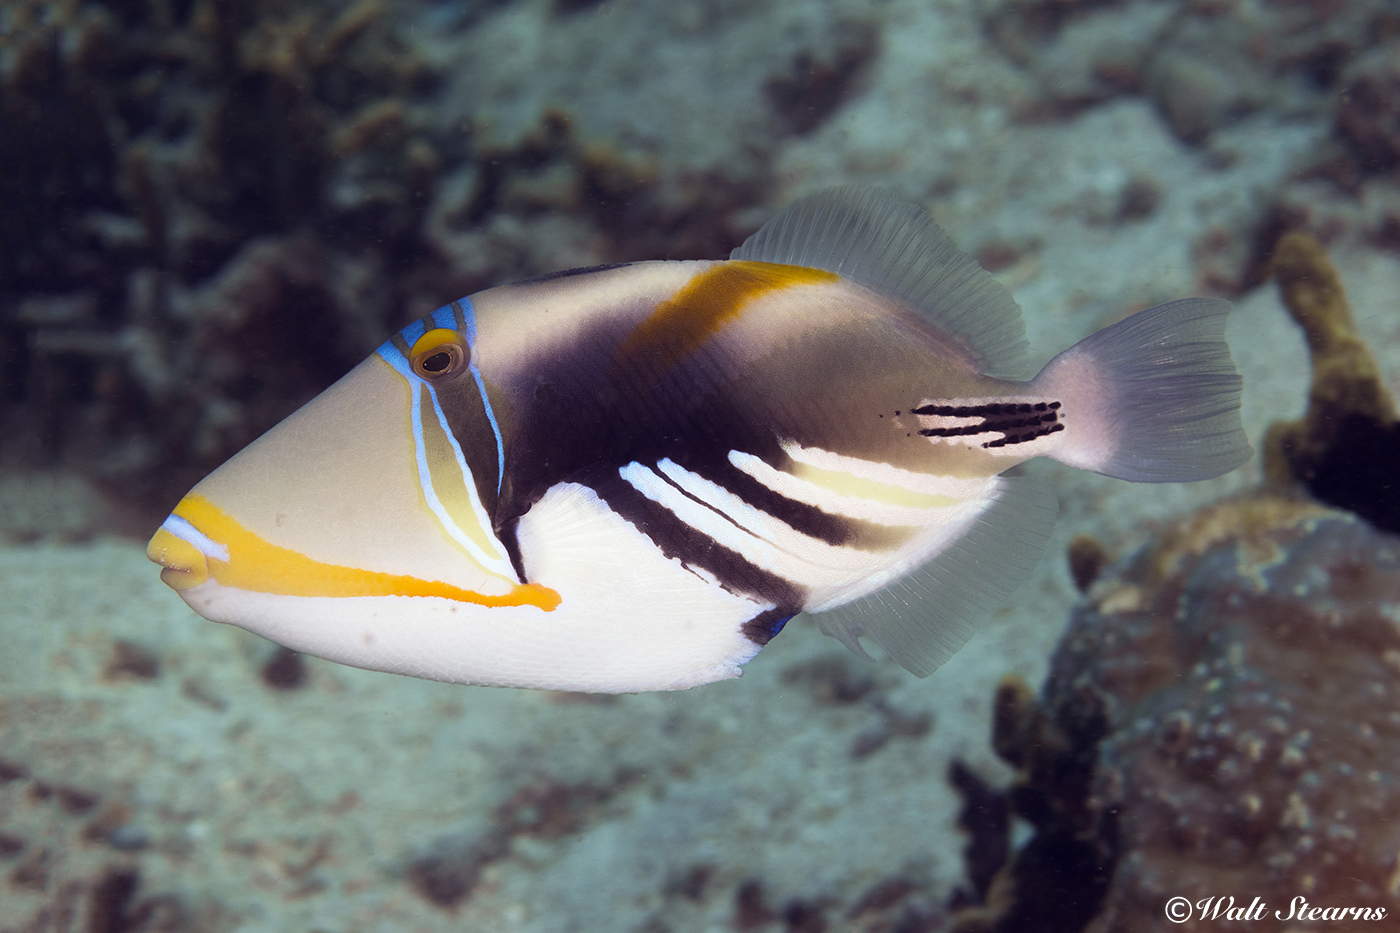 The Picasso triggerfish shows the bold color patterns typical of its namesake artist's works.